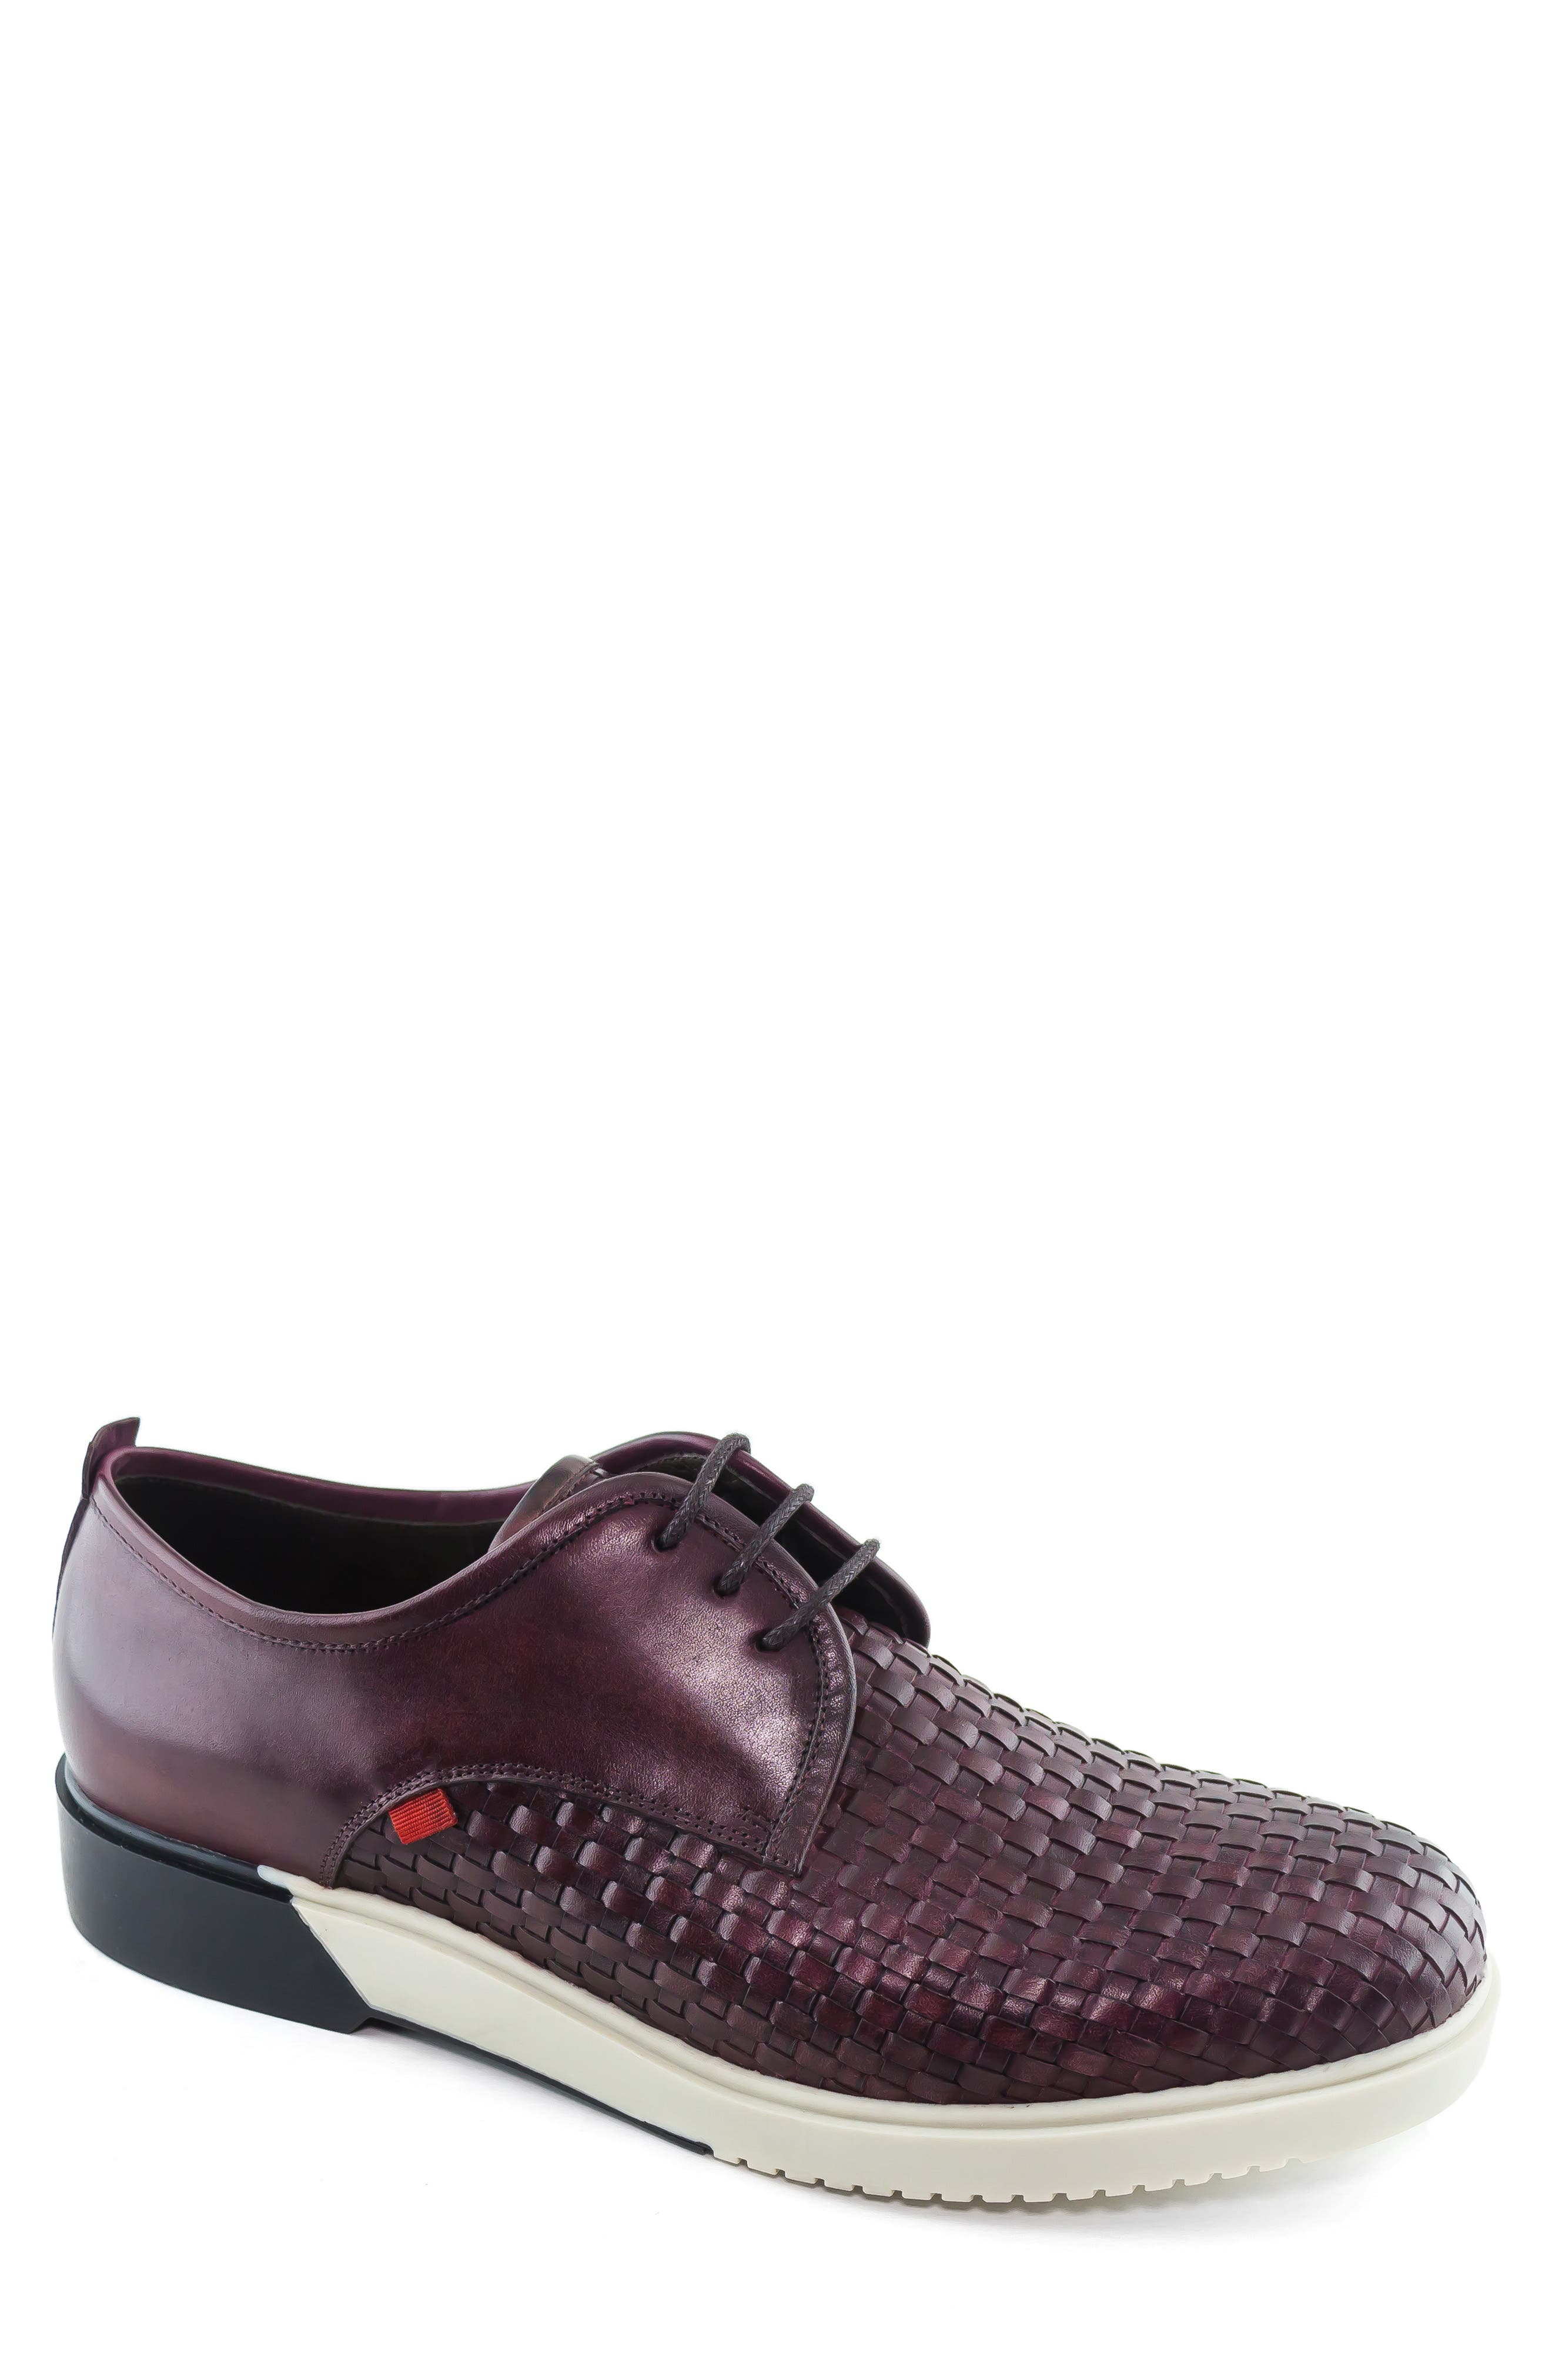 MARC JOSEPH NEW YORK Tribeca Woven Derby, Main, color, 930